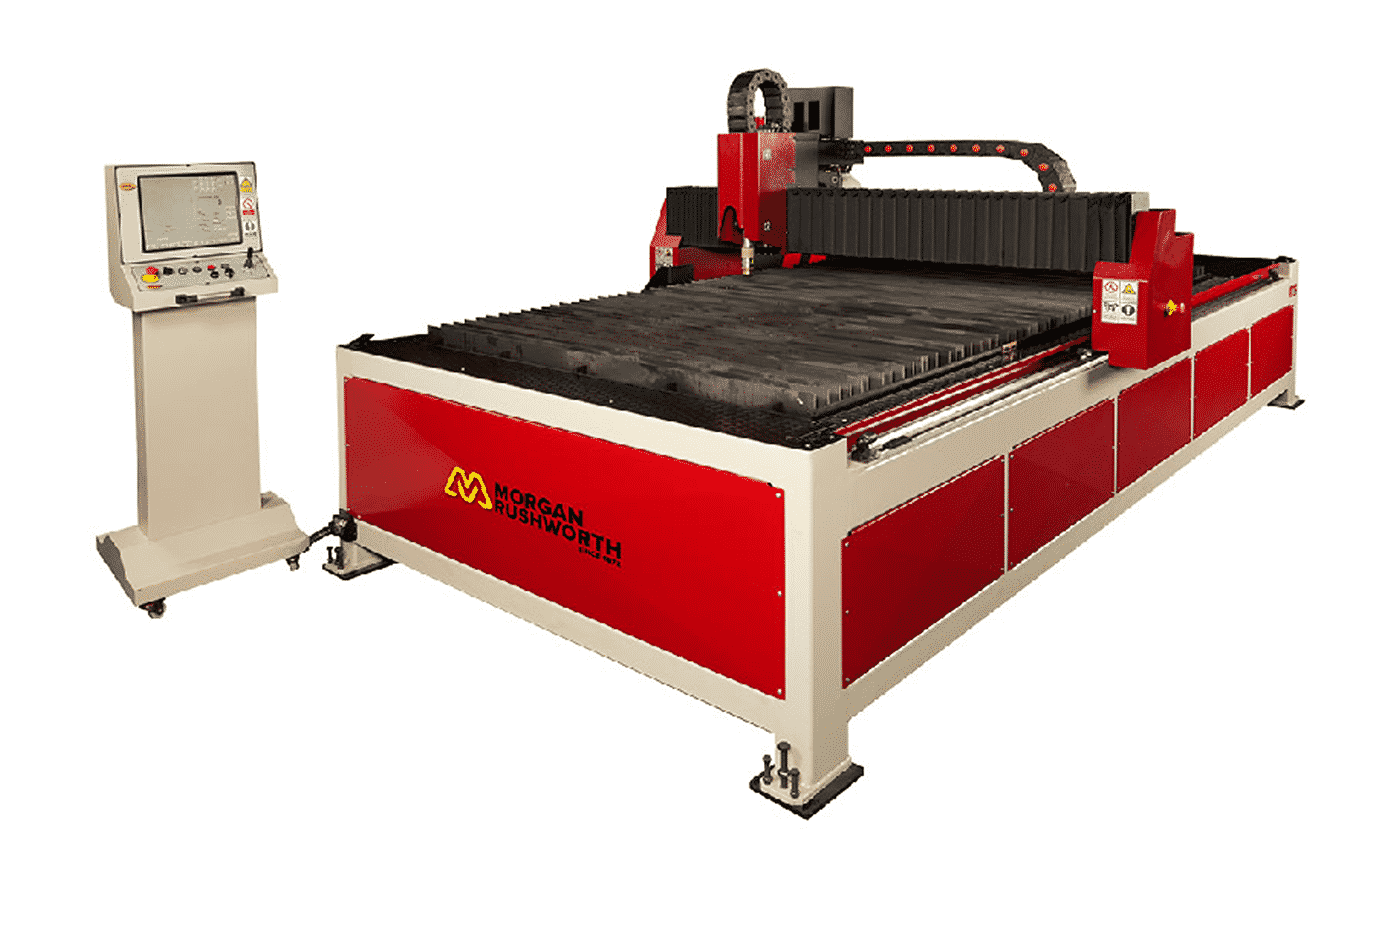 Front view of the Morgan Rushworth ACP CNC Compact Plasma Range